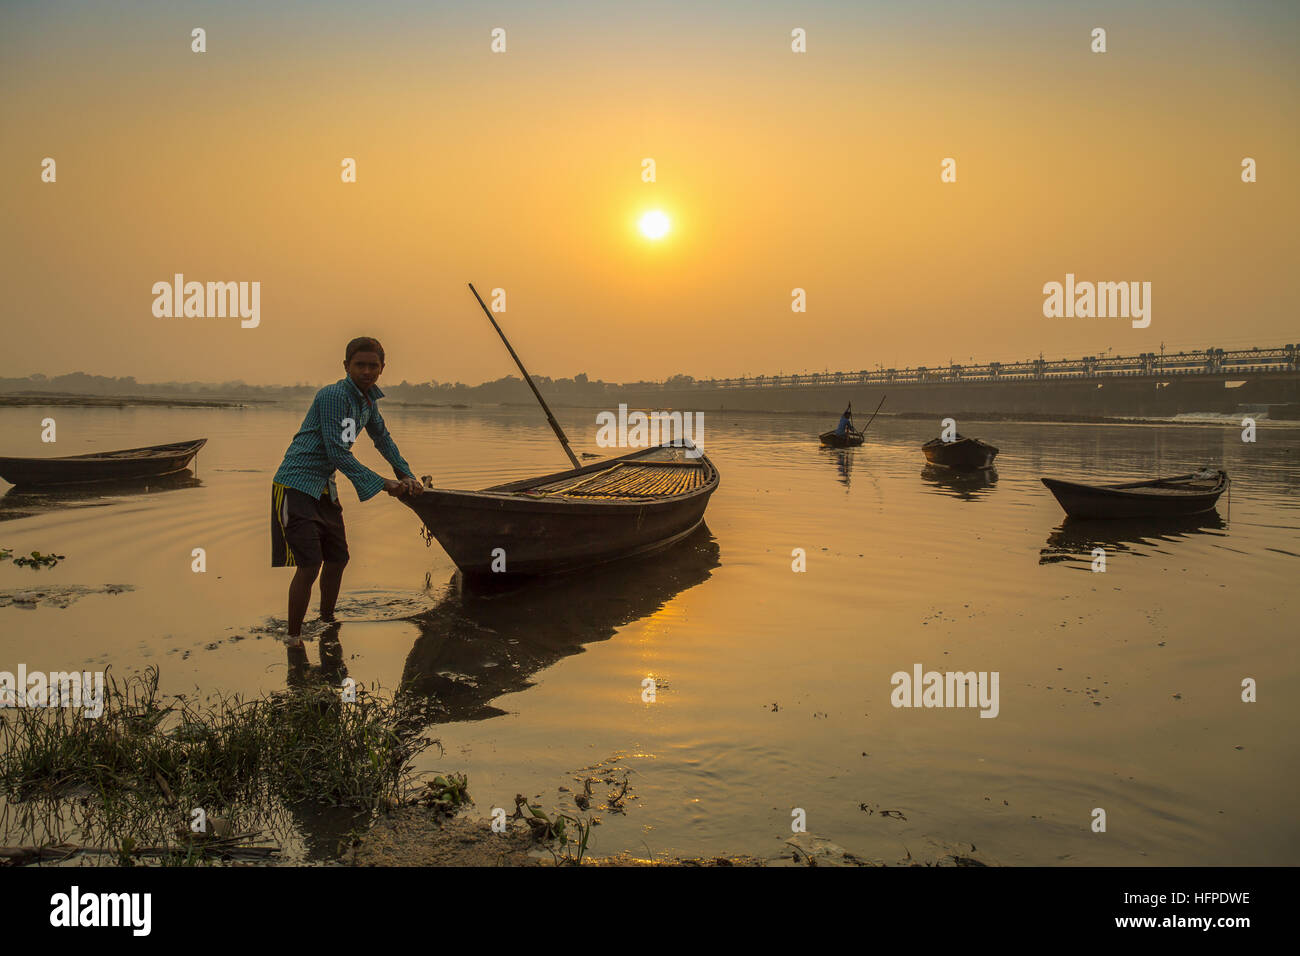 Oarsman tries to tow his boat to shore at sunset on river Damodar near the Durgapur Barrage, West Bengal, India. Stock Photo